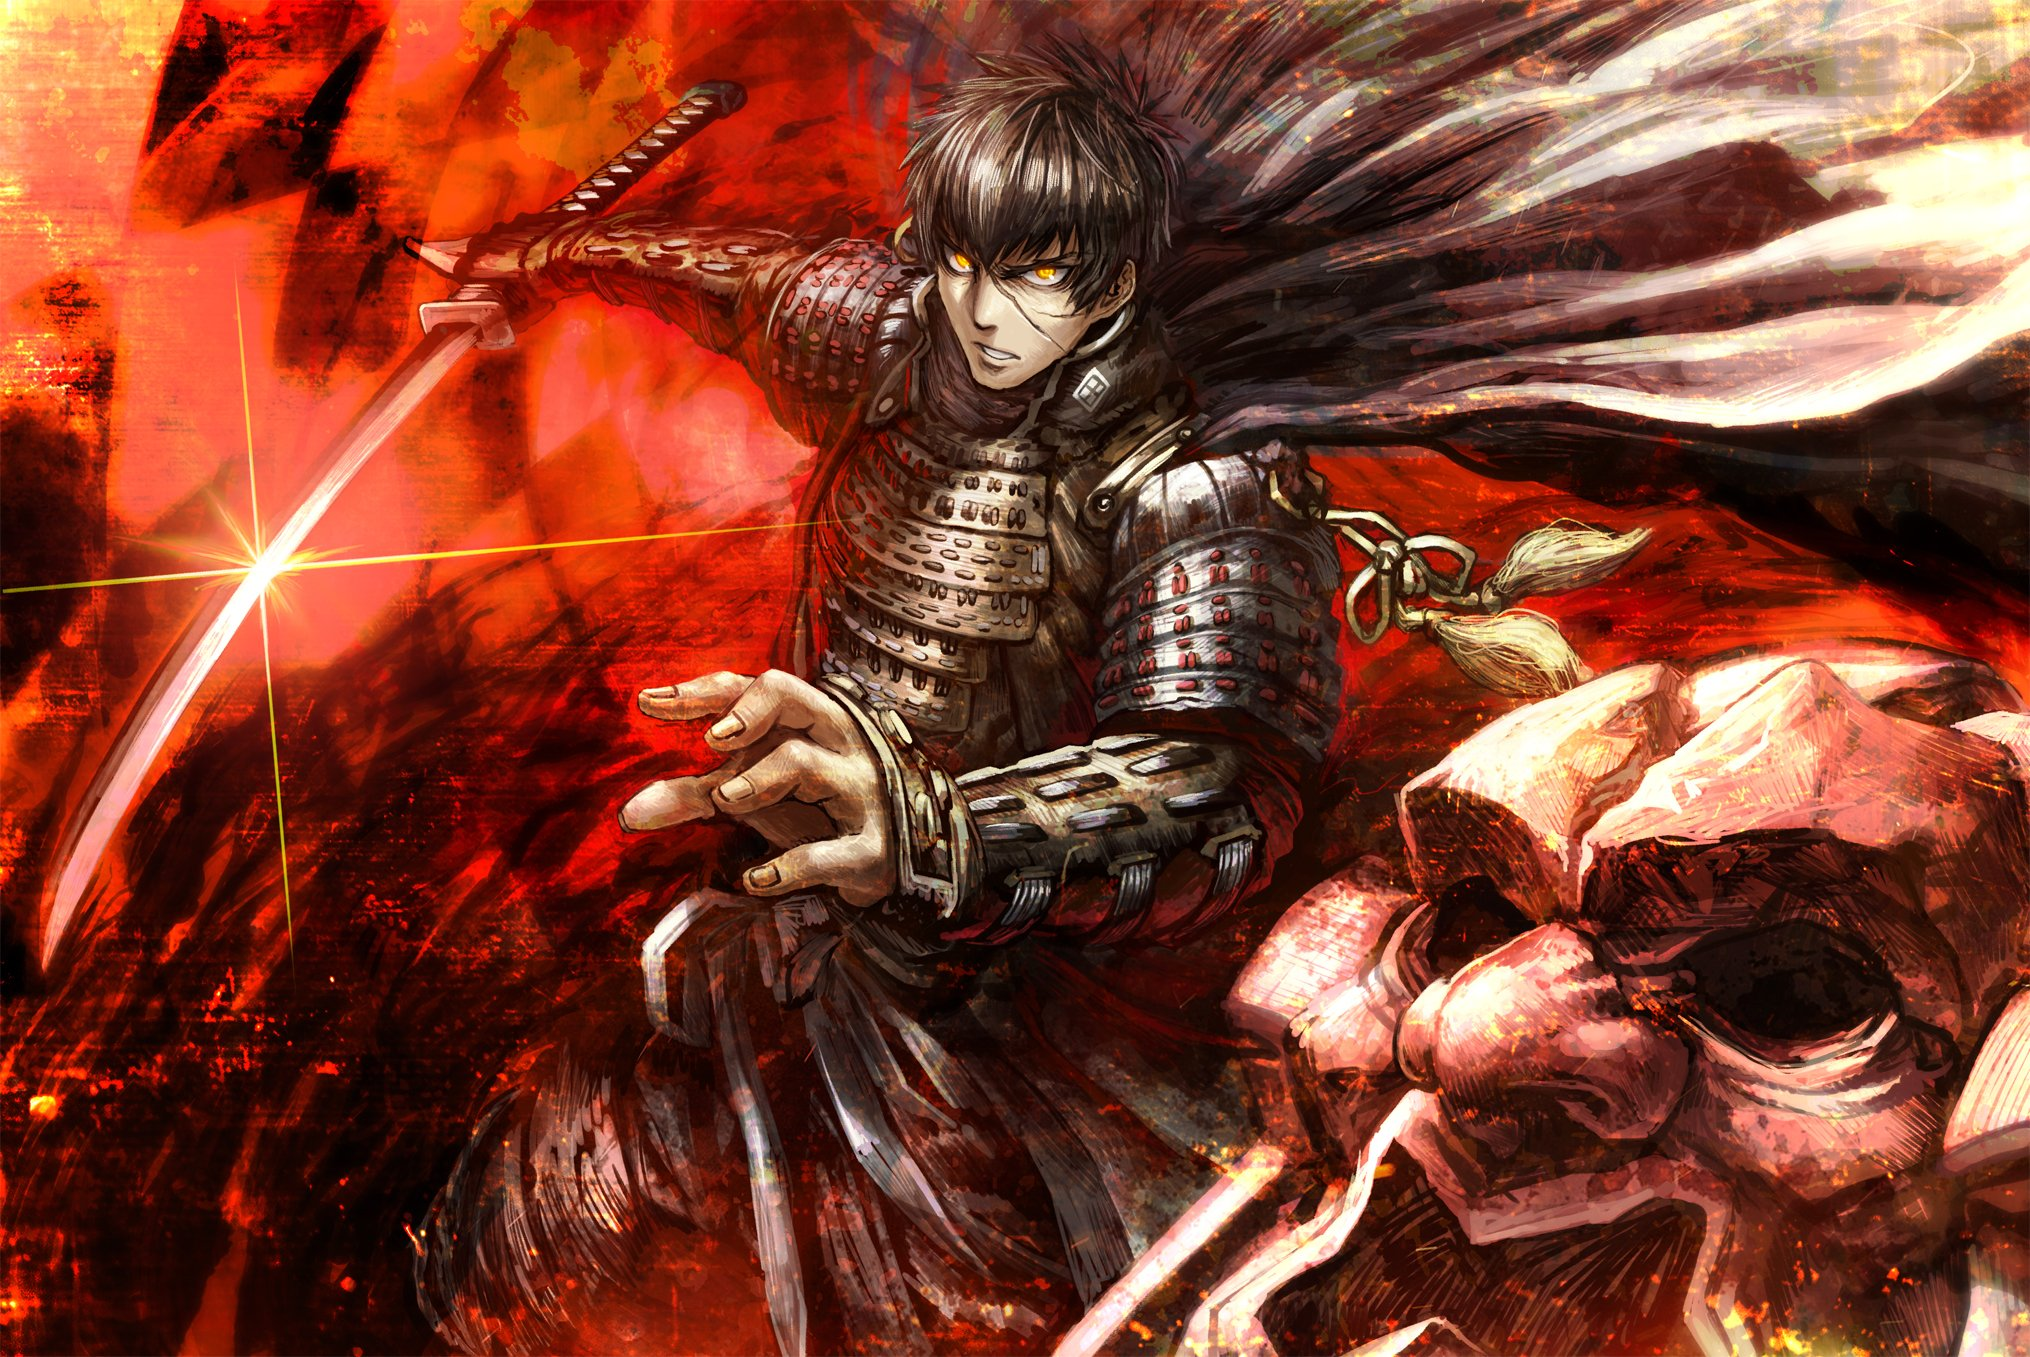 Cute Small Girl Wallpapers For Facebook Anime All Male Anthropomorphism Armor Black Hair Cape